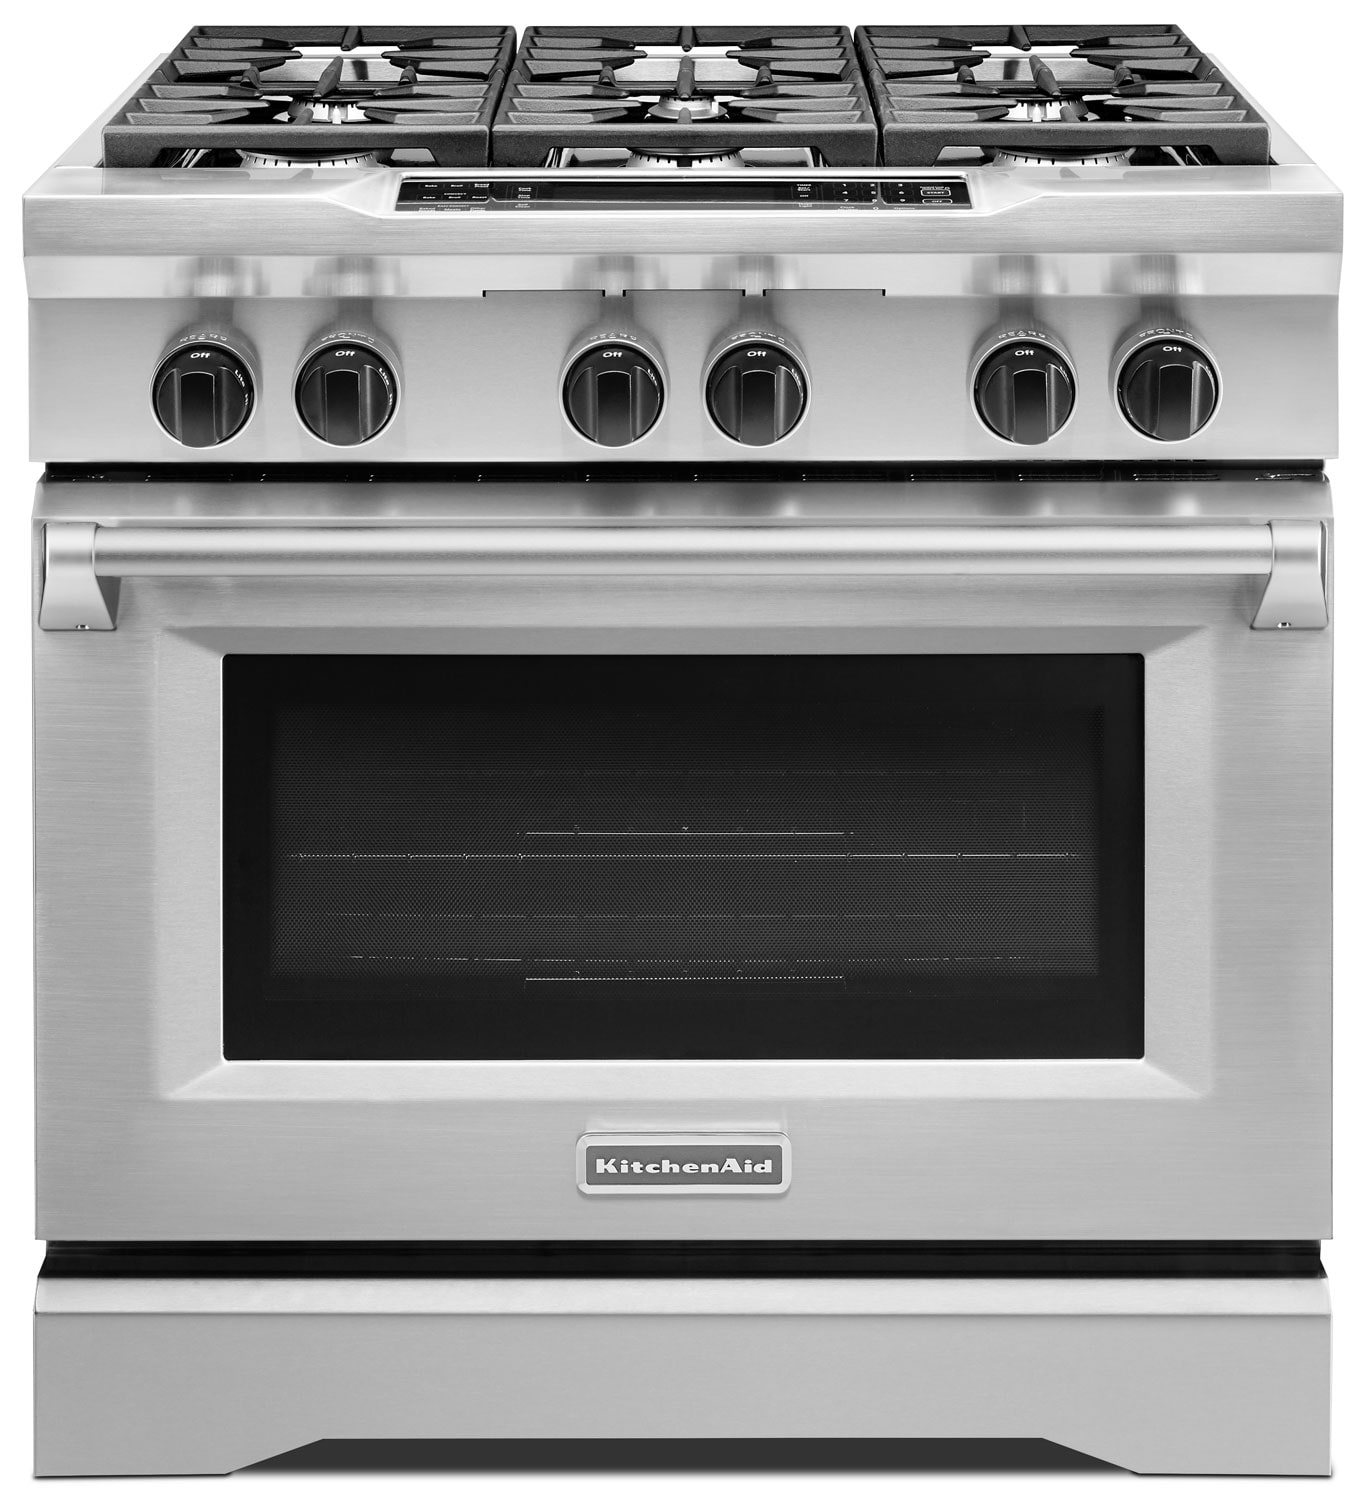 KitchenAid Stainless Steel Freestanding Dual Fuel Range (5.1 Cu. Ft.) - KDRS467VSS